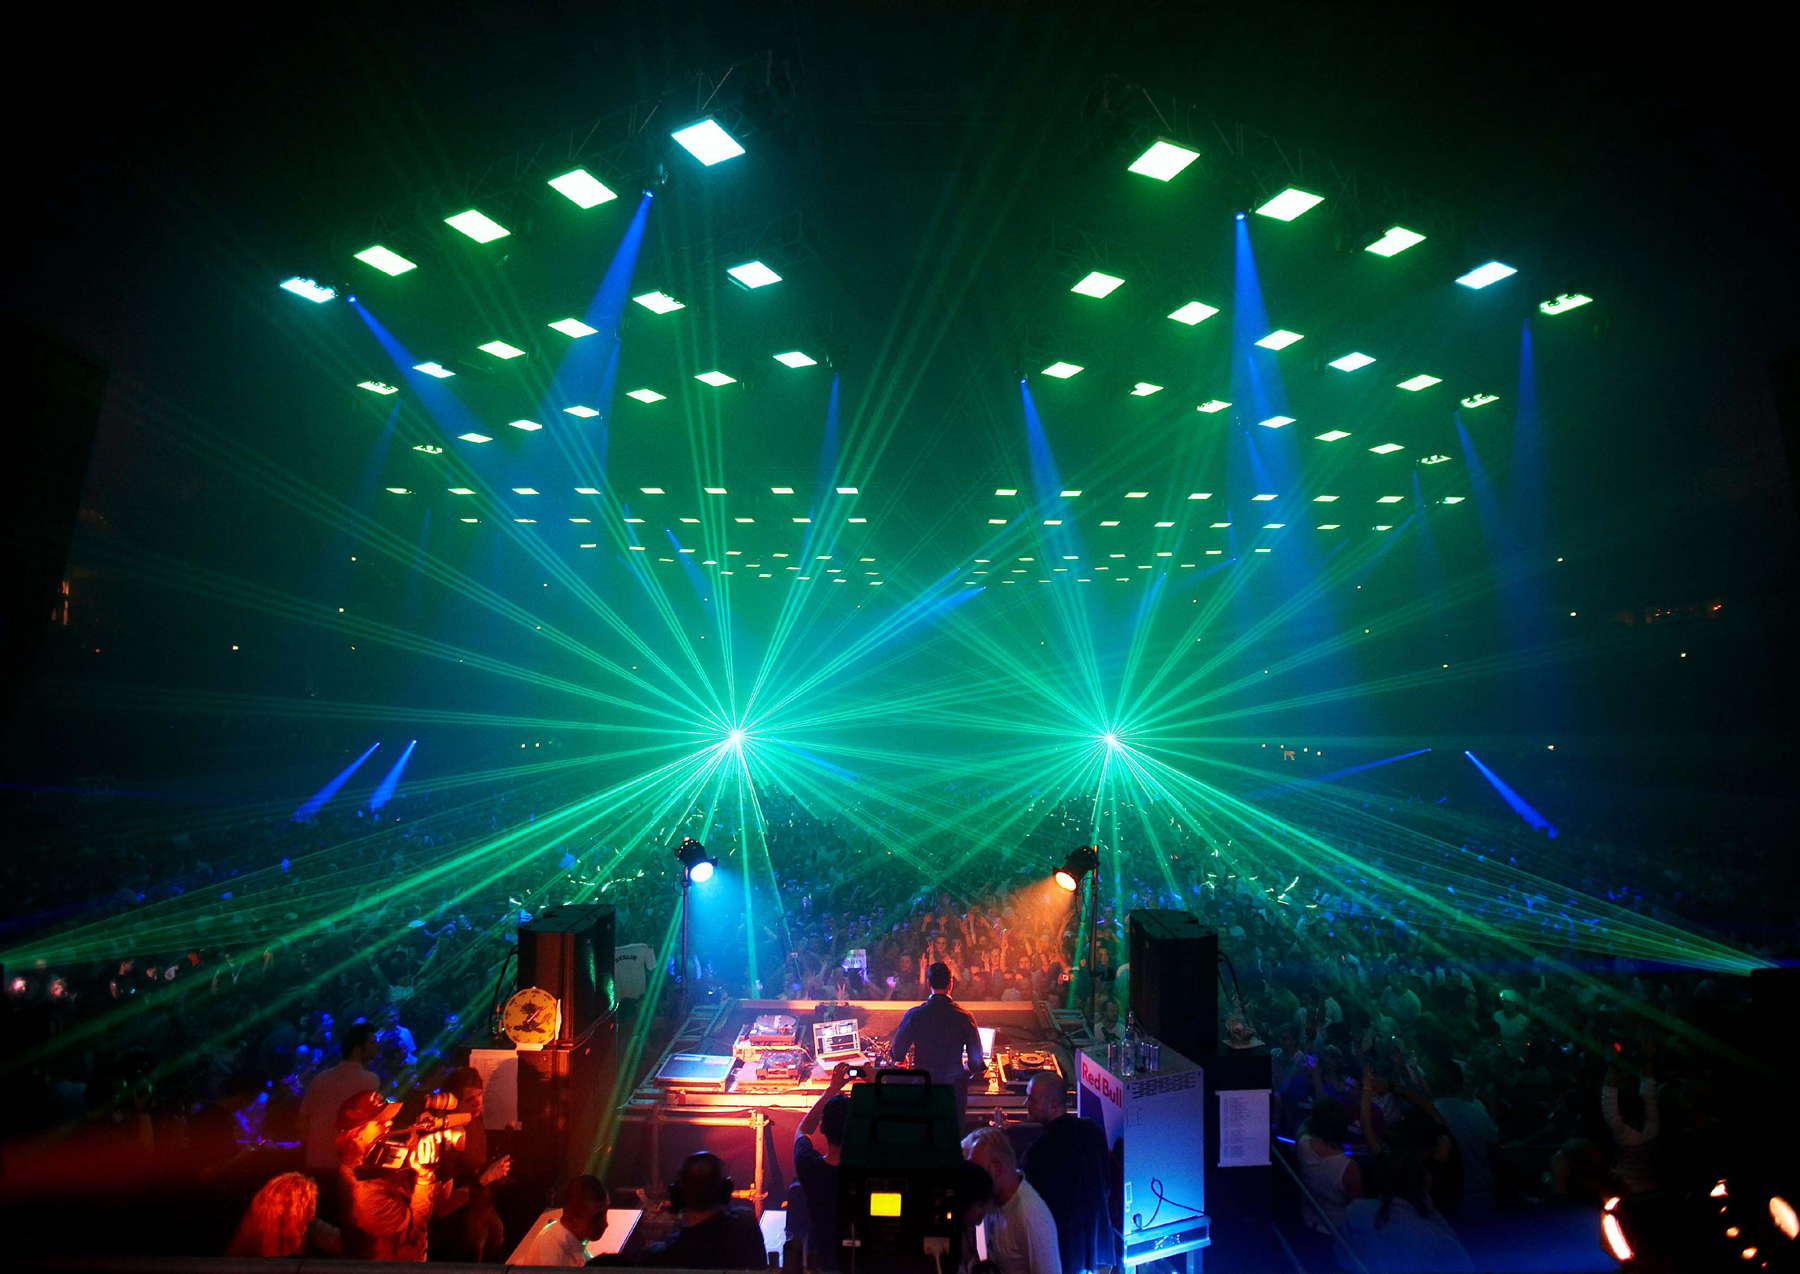 lights band concert Lasers HD Wallpaper